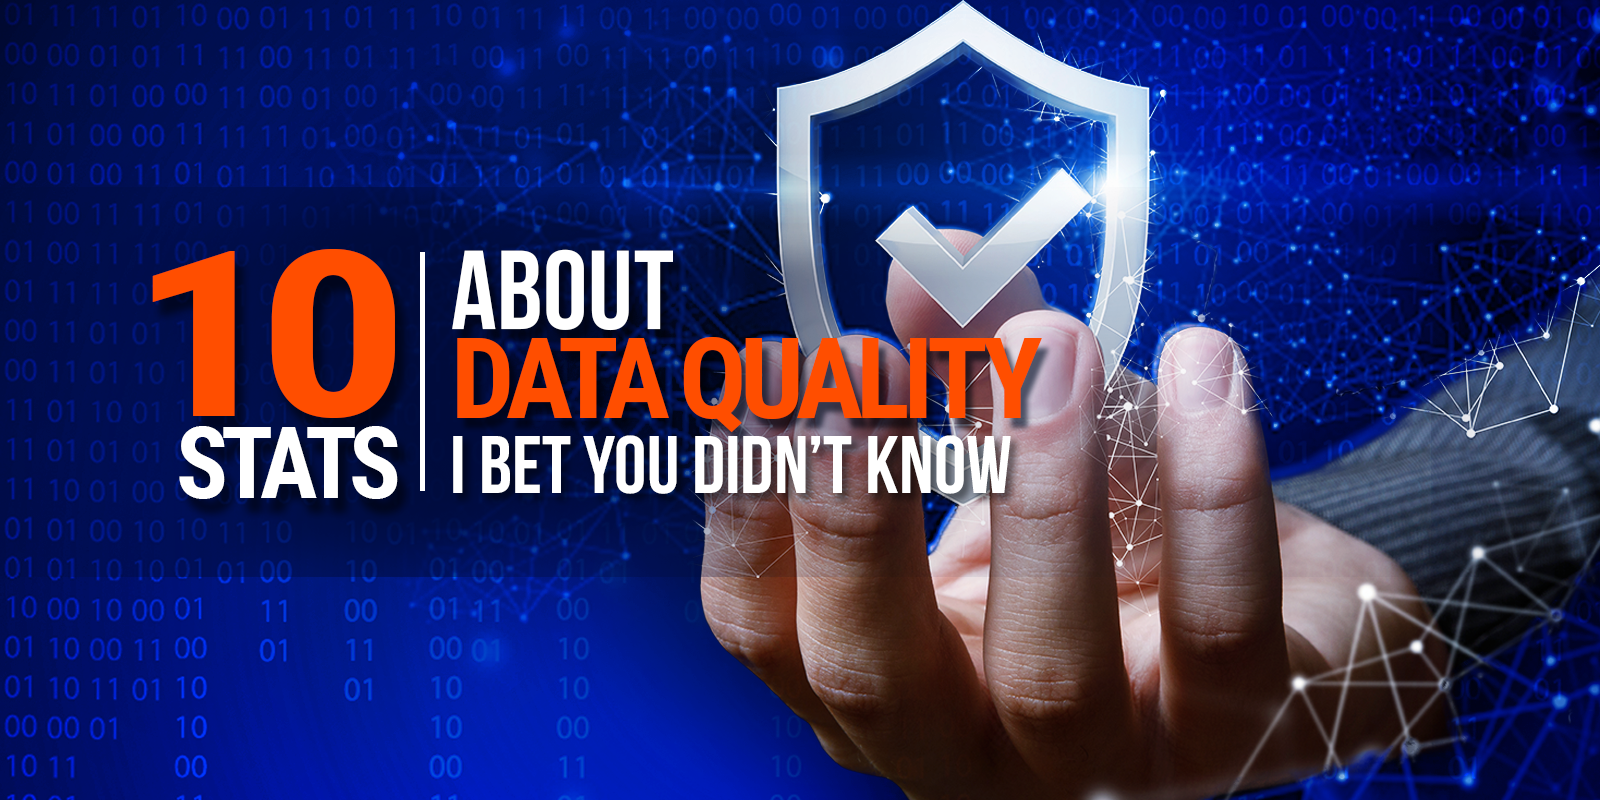 10 Stats About Data Quality I Bet You Didn't Know